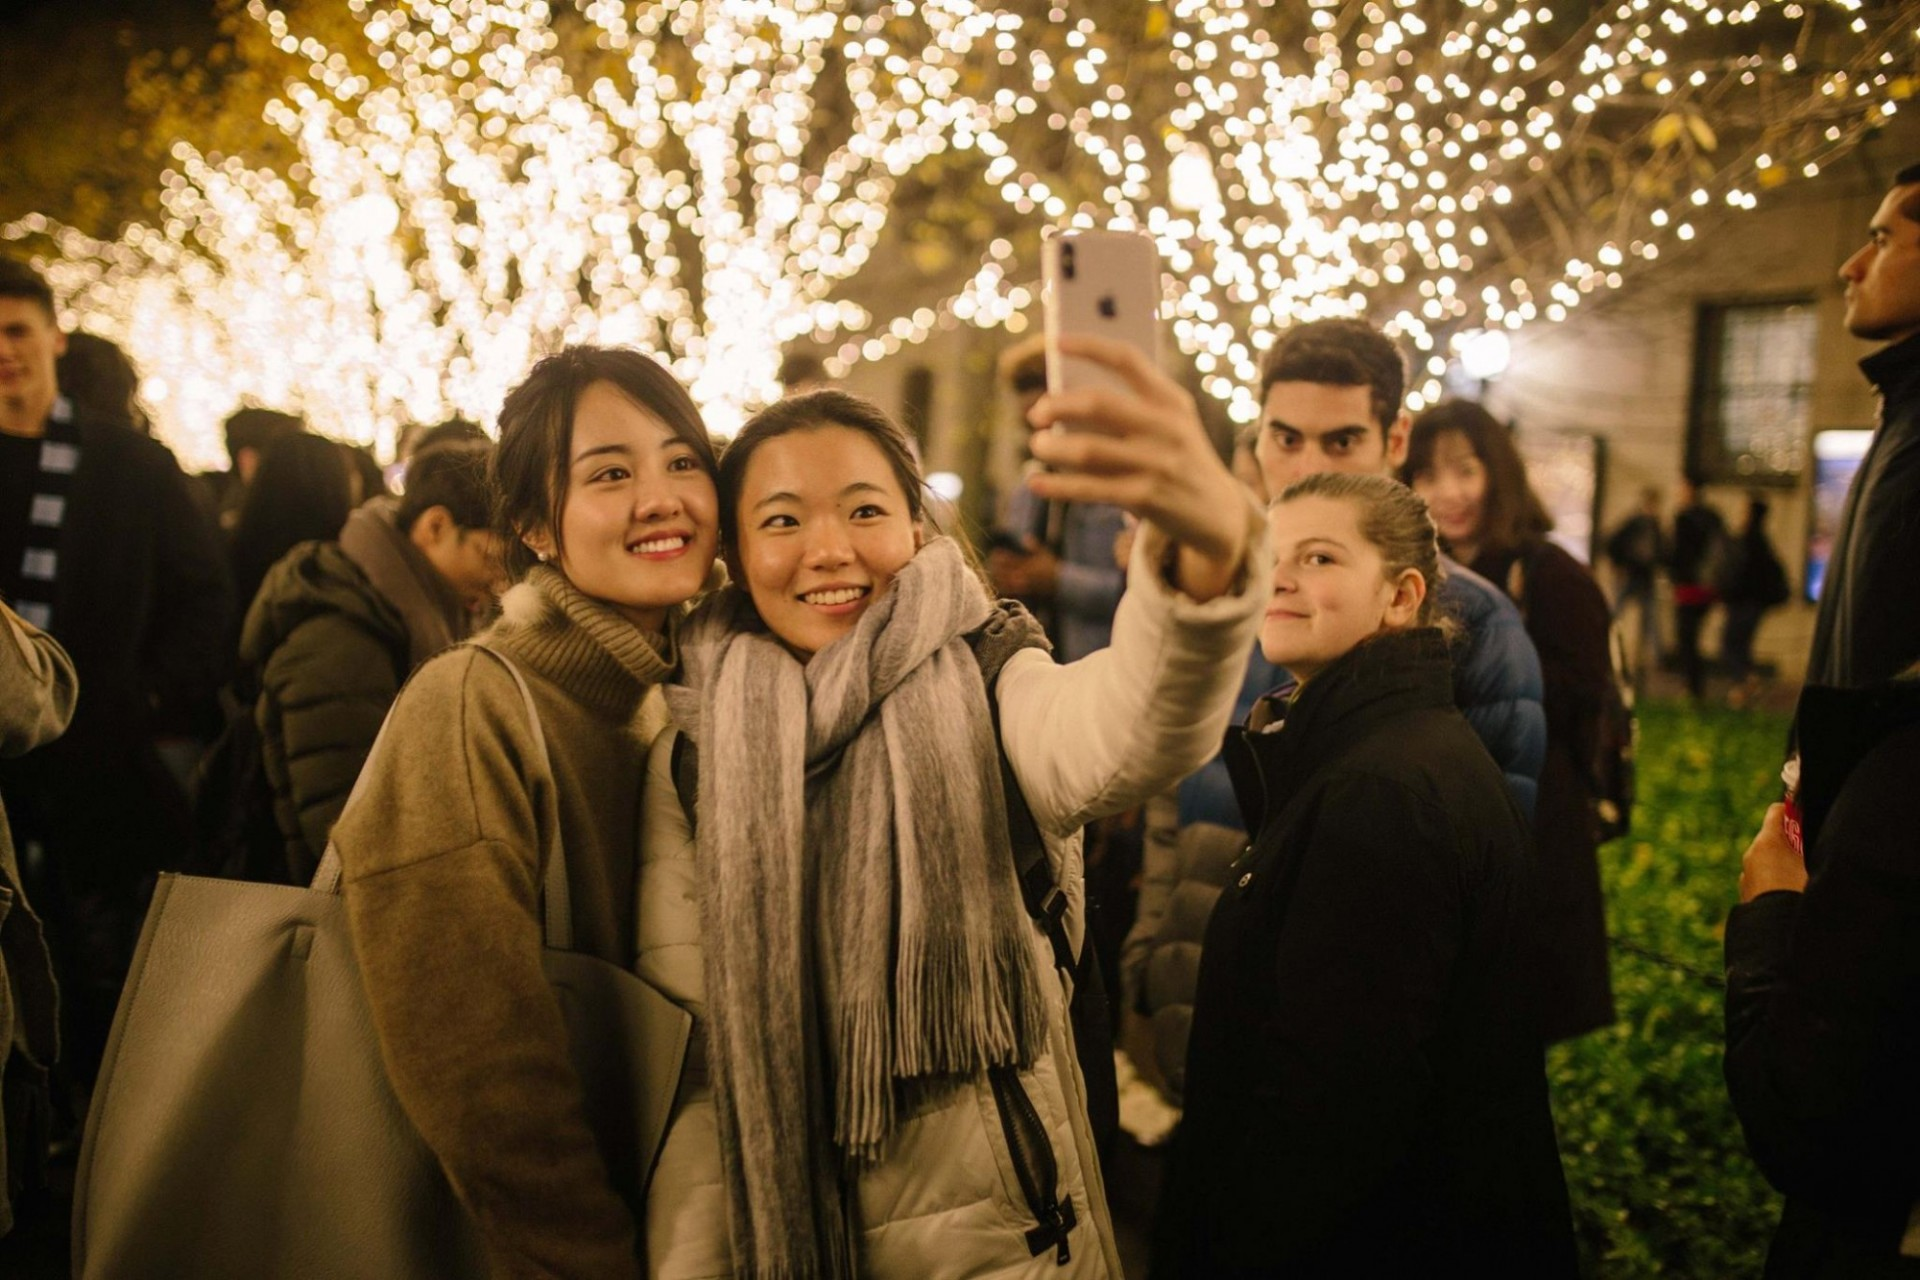 Students take photo in front of lit trees on College Walk